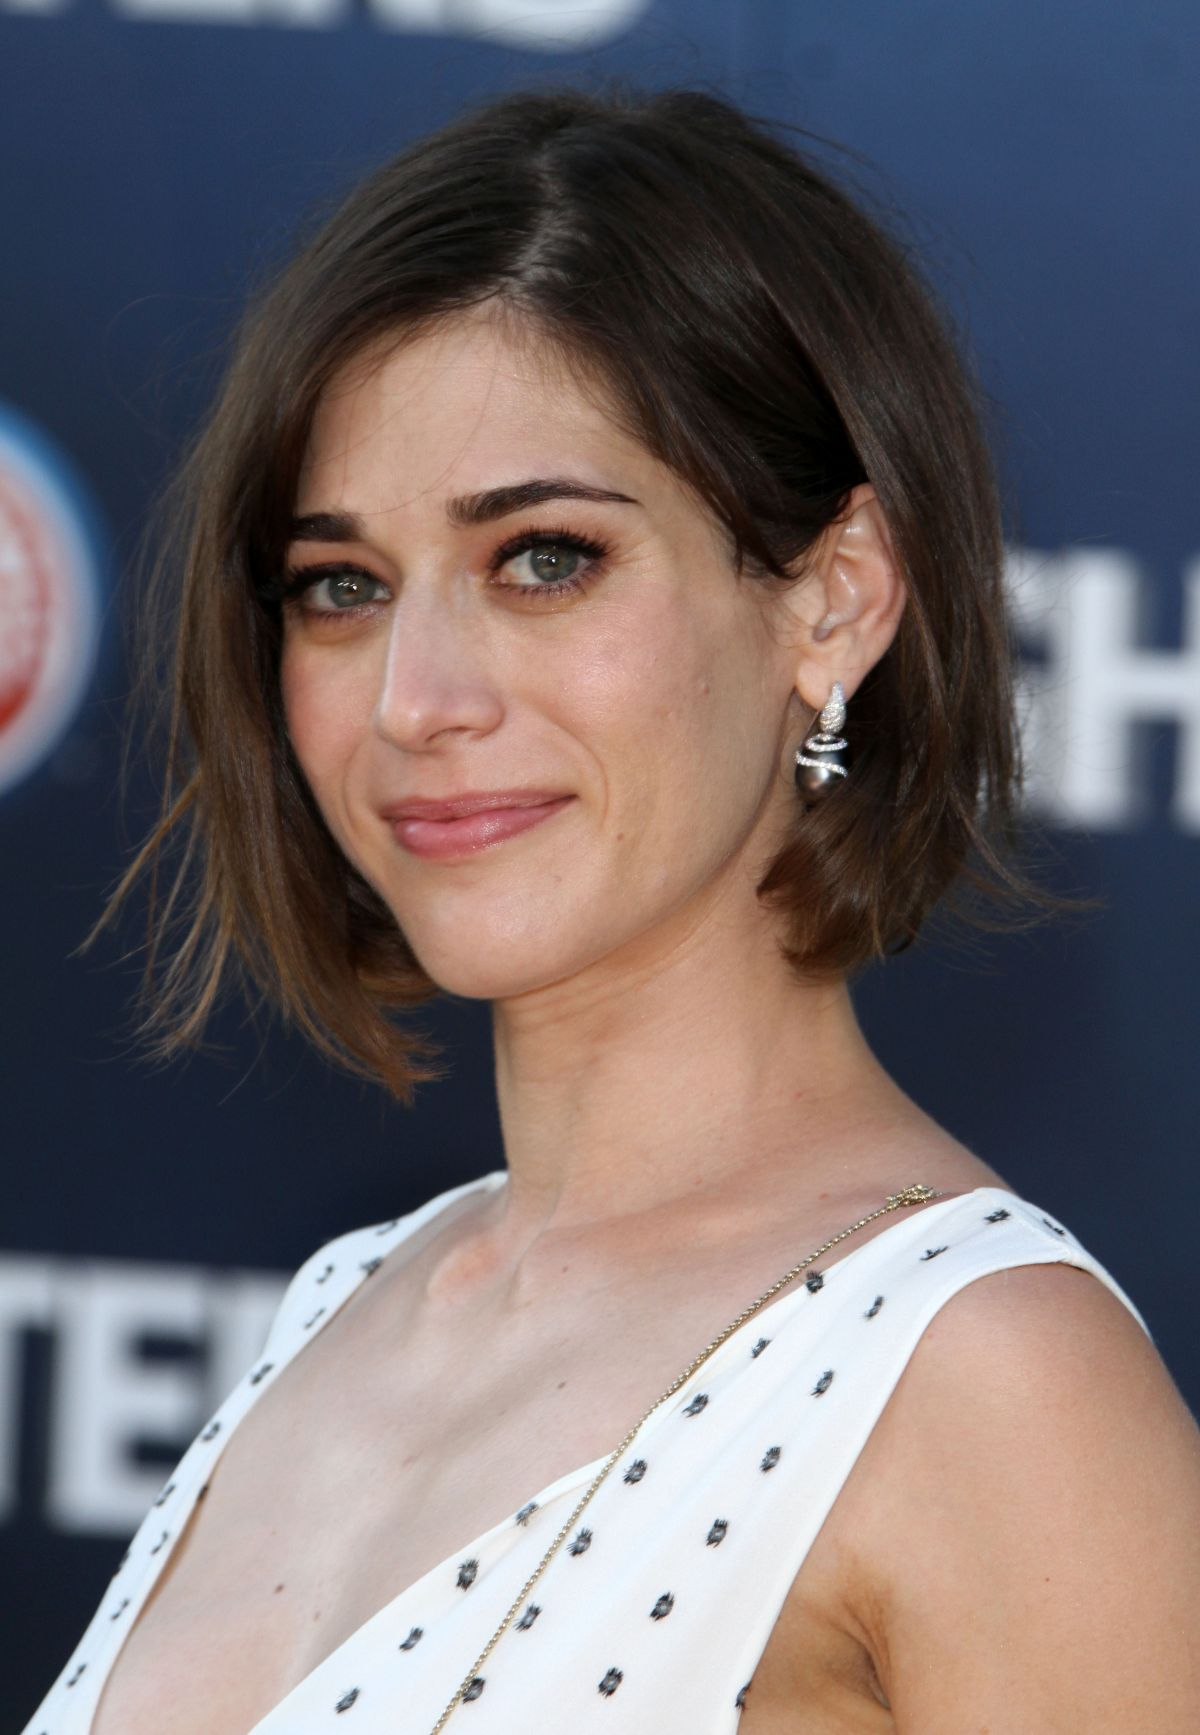 Lizzy caplan save the date 03 bra Part 7